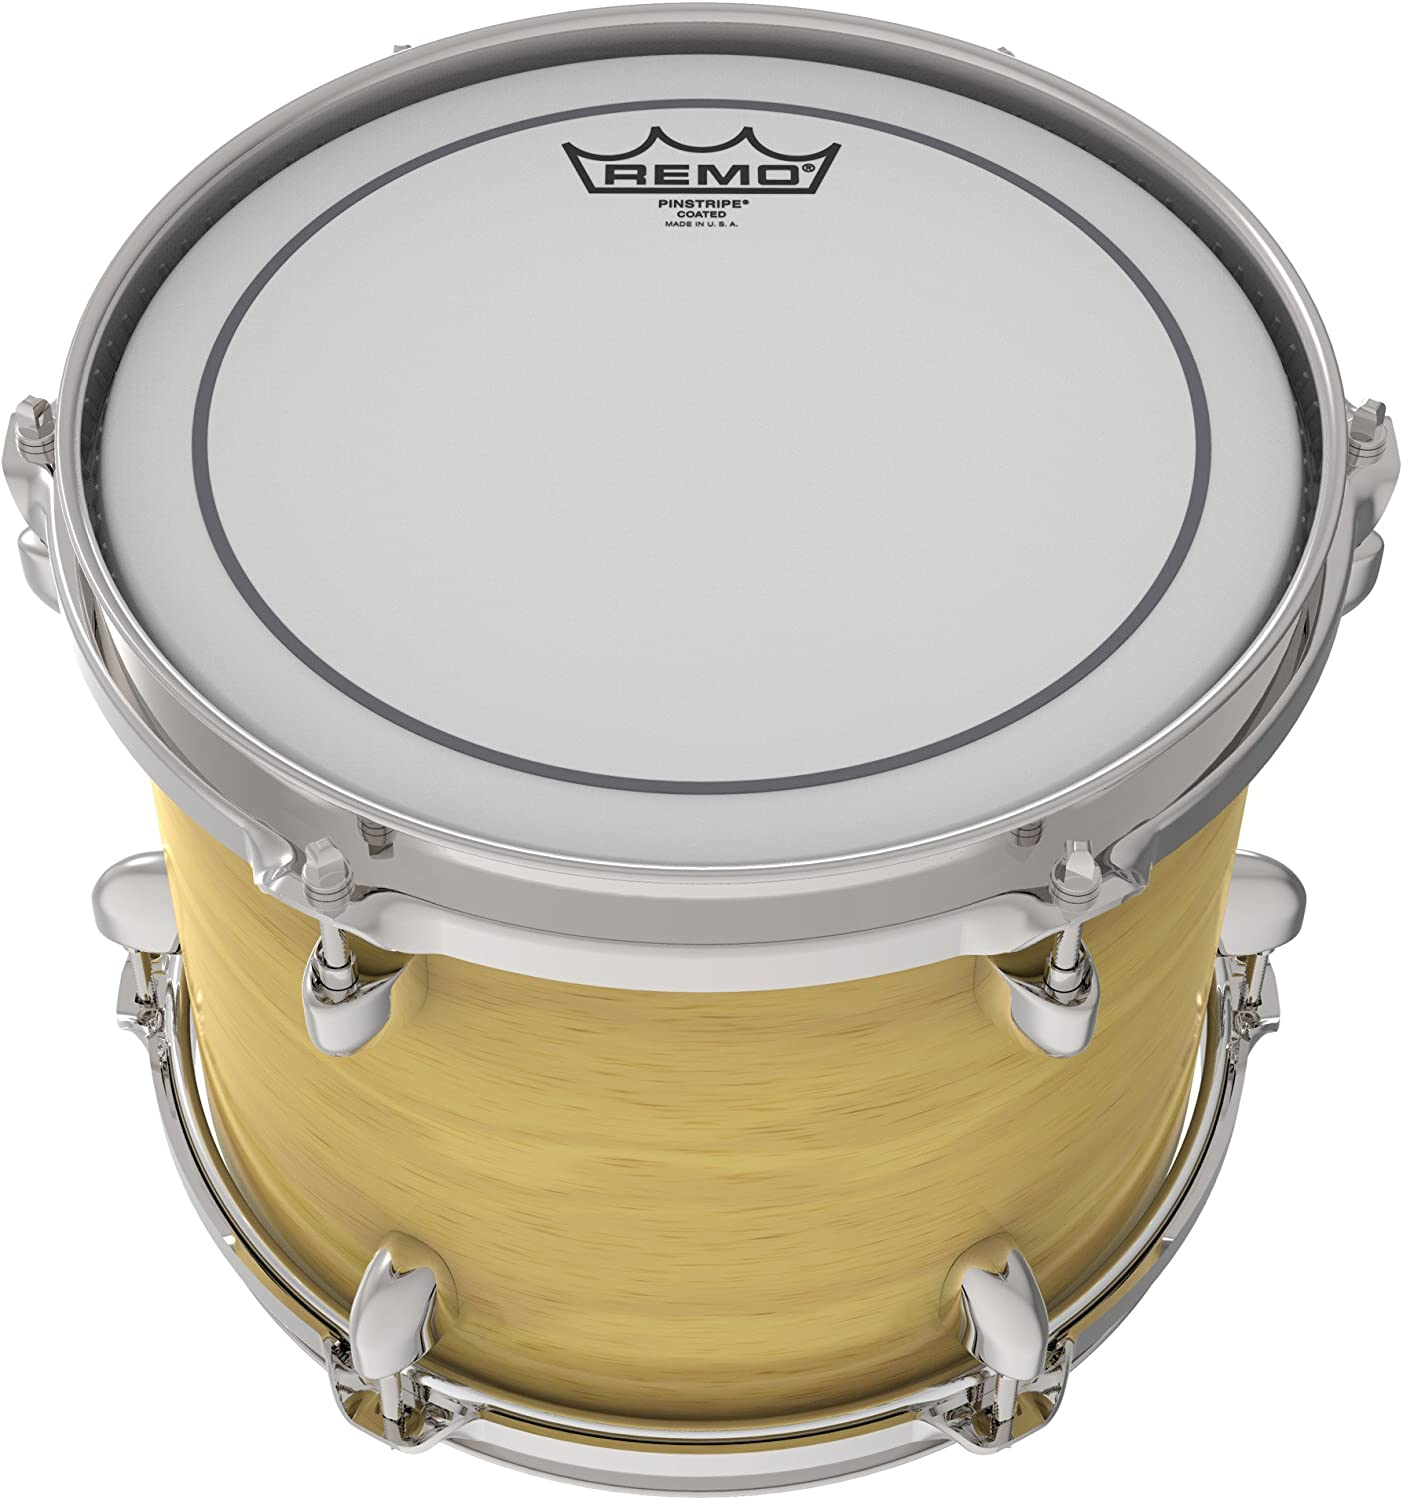 "Remo 18/"" Pinstripe Coated Drum Head PS-0118-00"